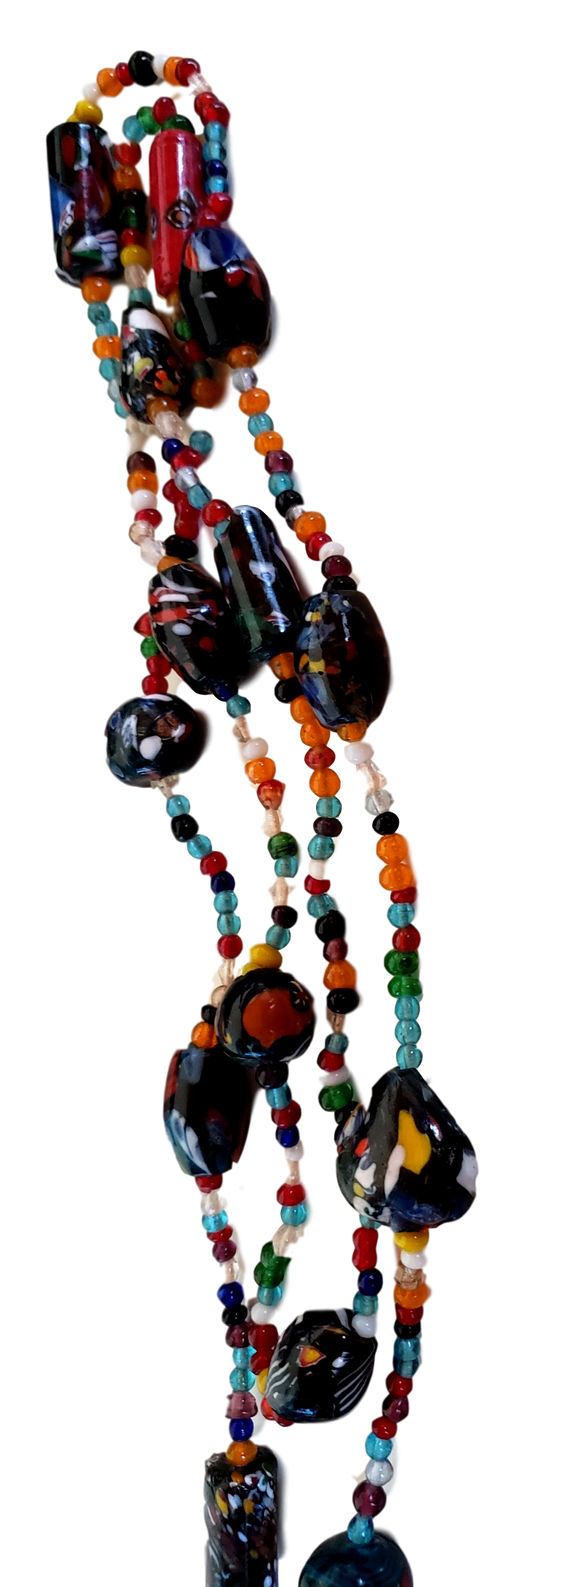 Jewelry Necklace Handmade Fused Glass Confetti Beads Various Colors Textures